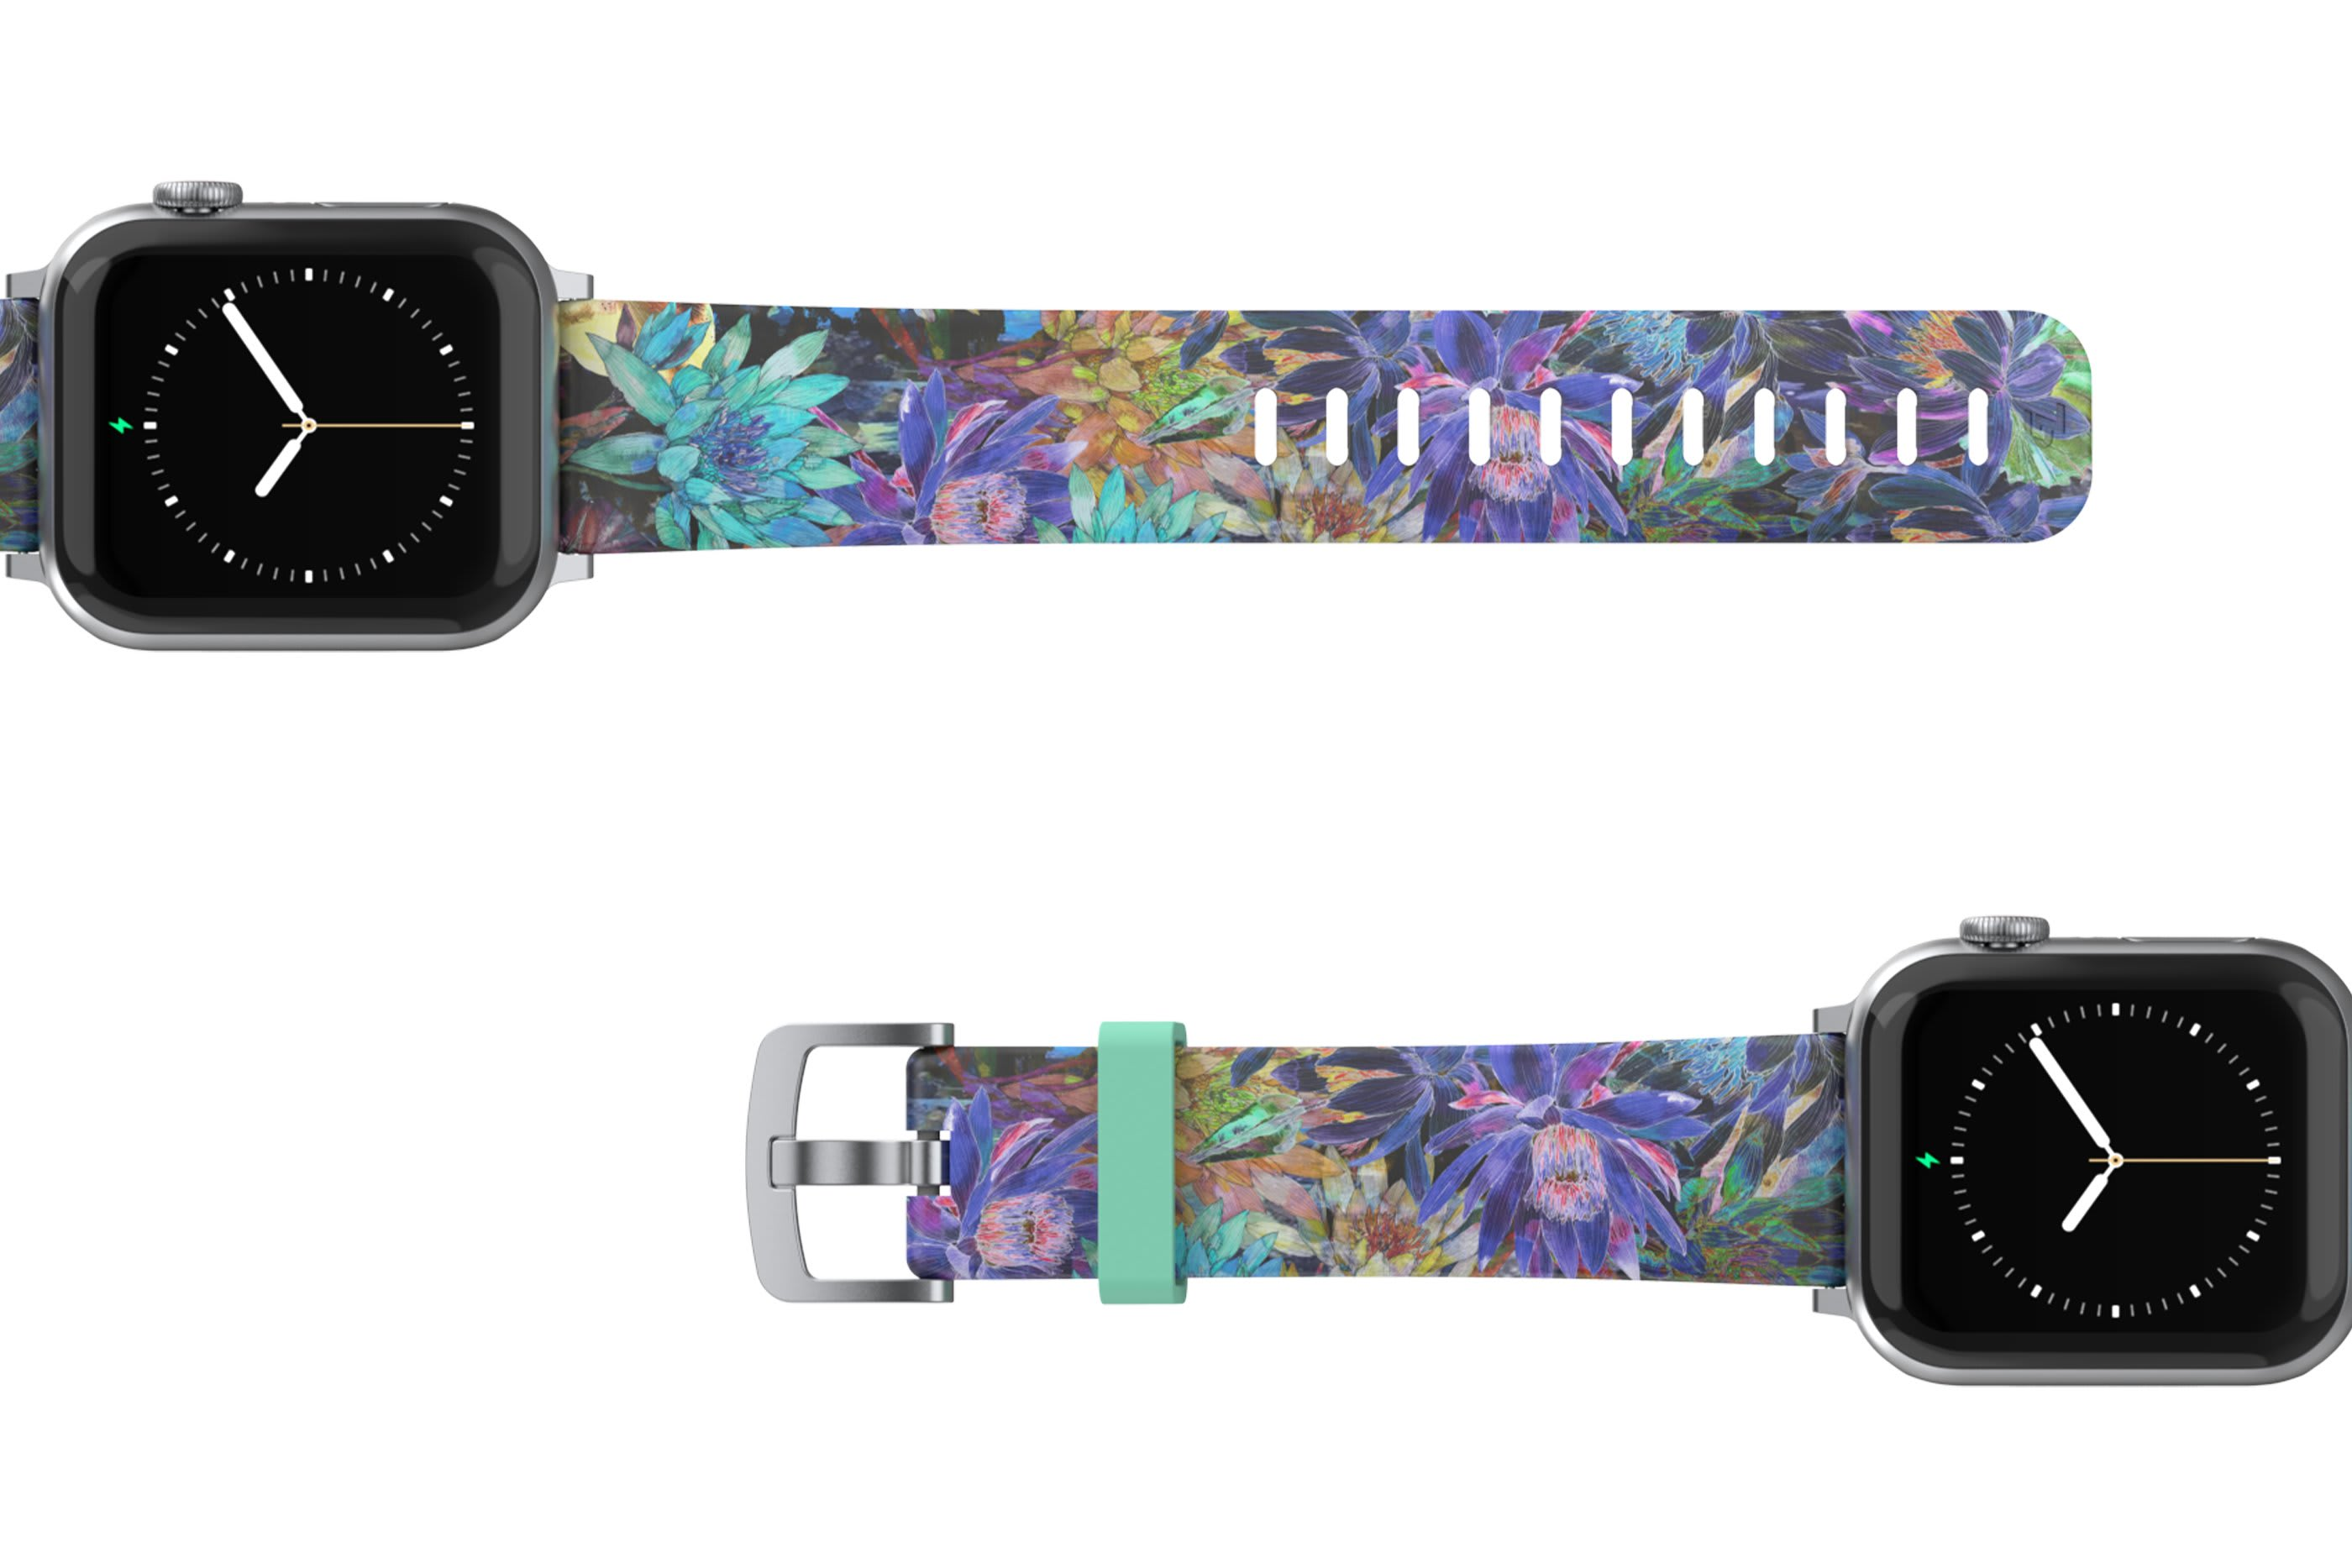 Twilight Blossom Apple Watch Band with silver hardware viewed top down